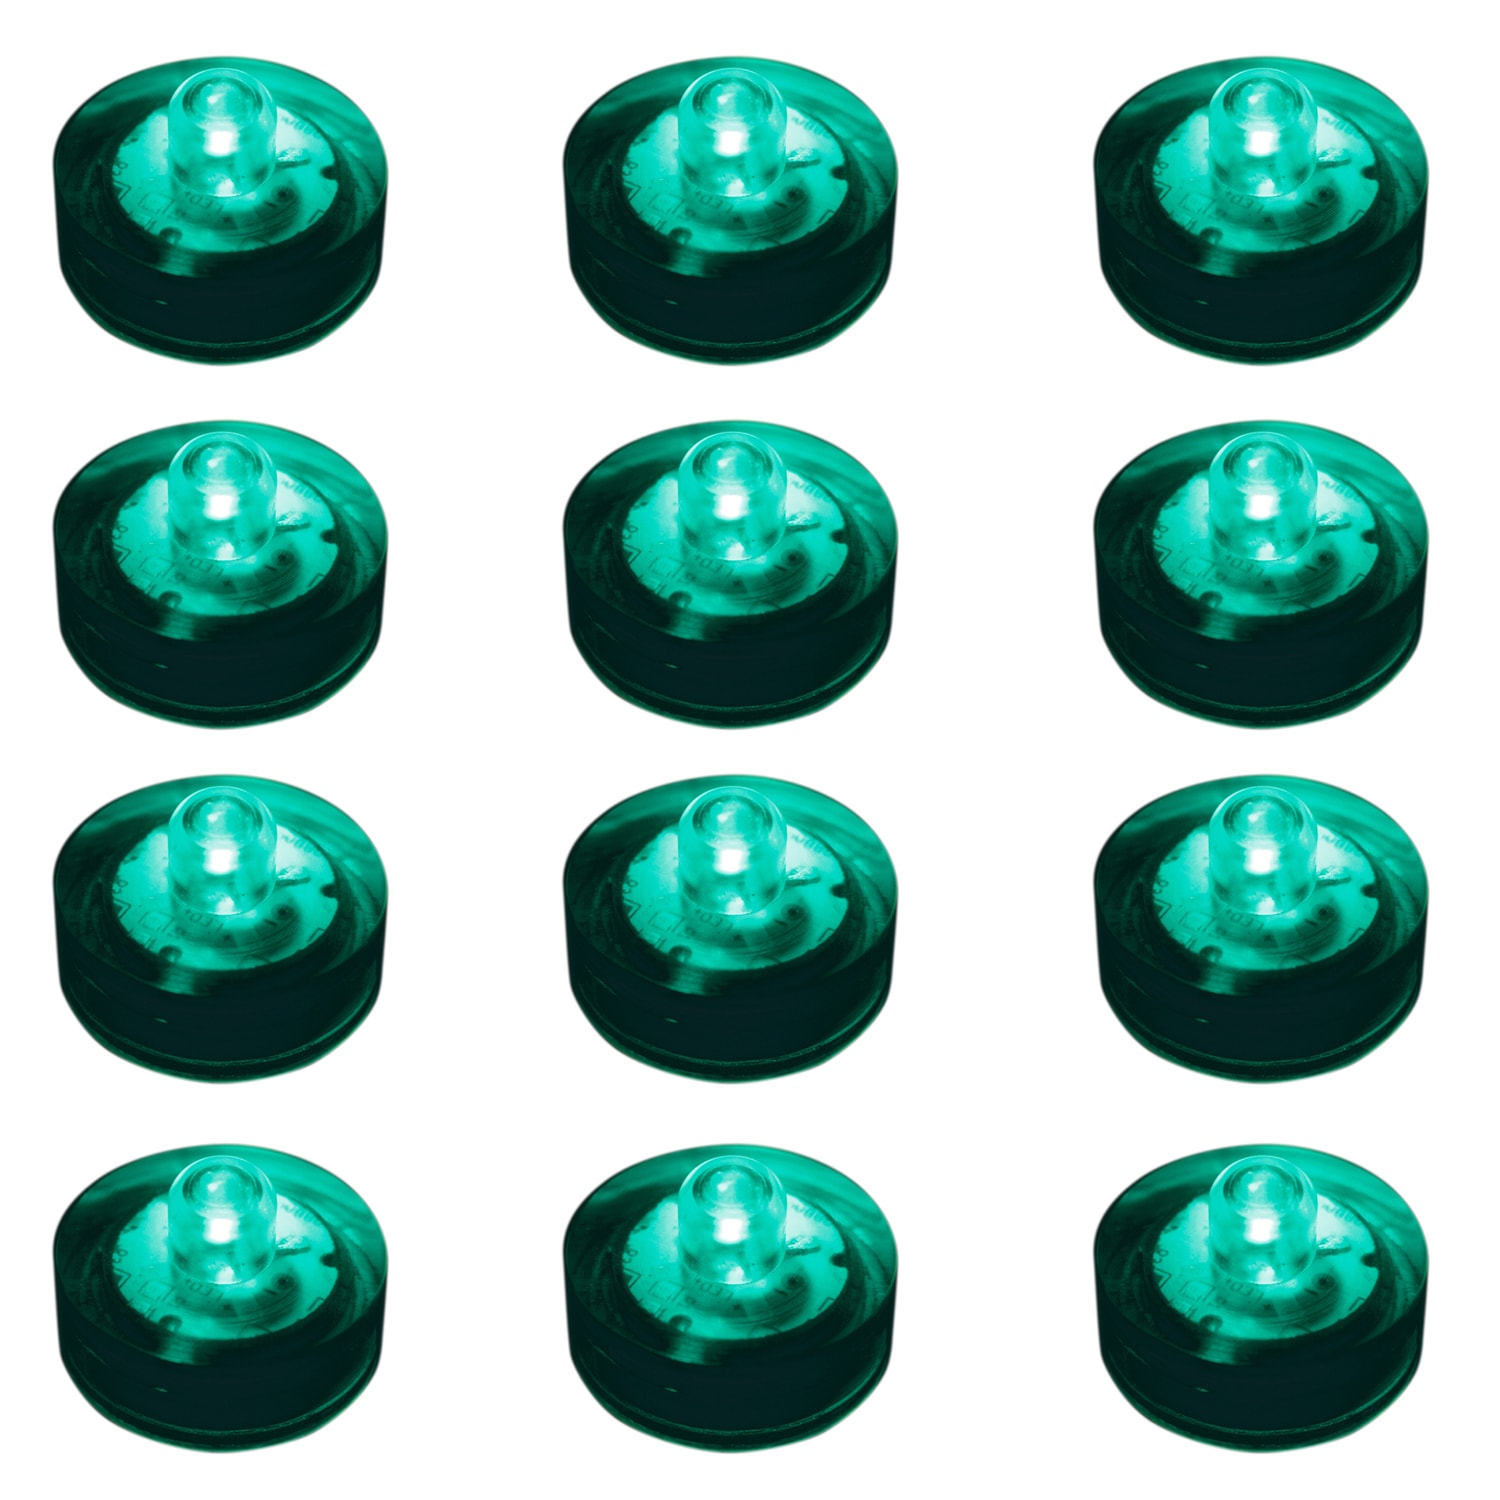 Lumabase Specialties Submersible LED Lights - Teal (Set o...